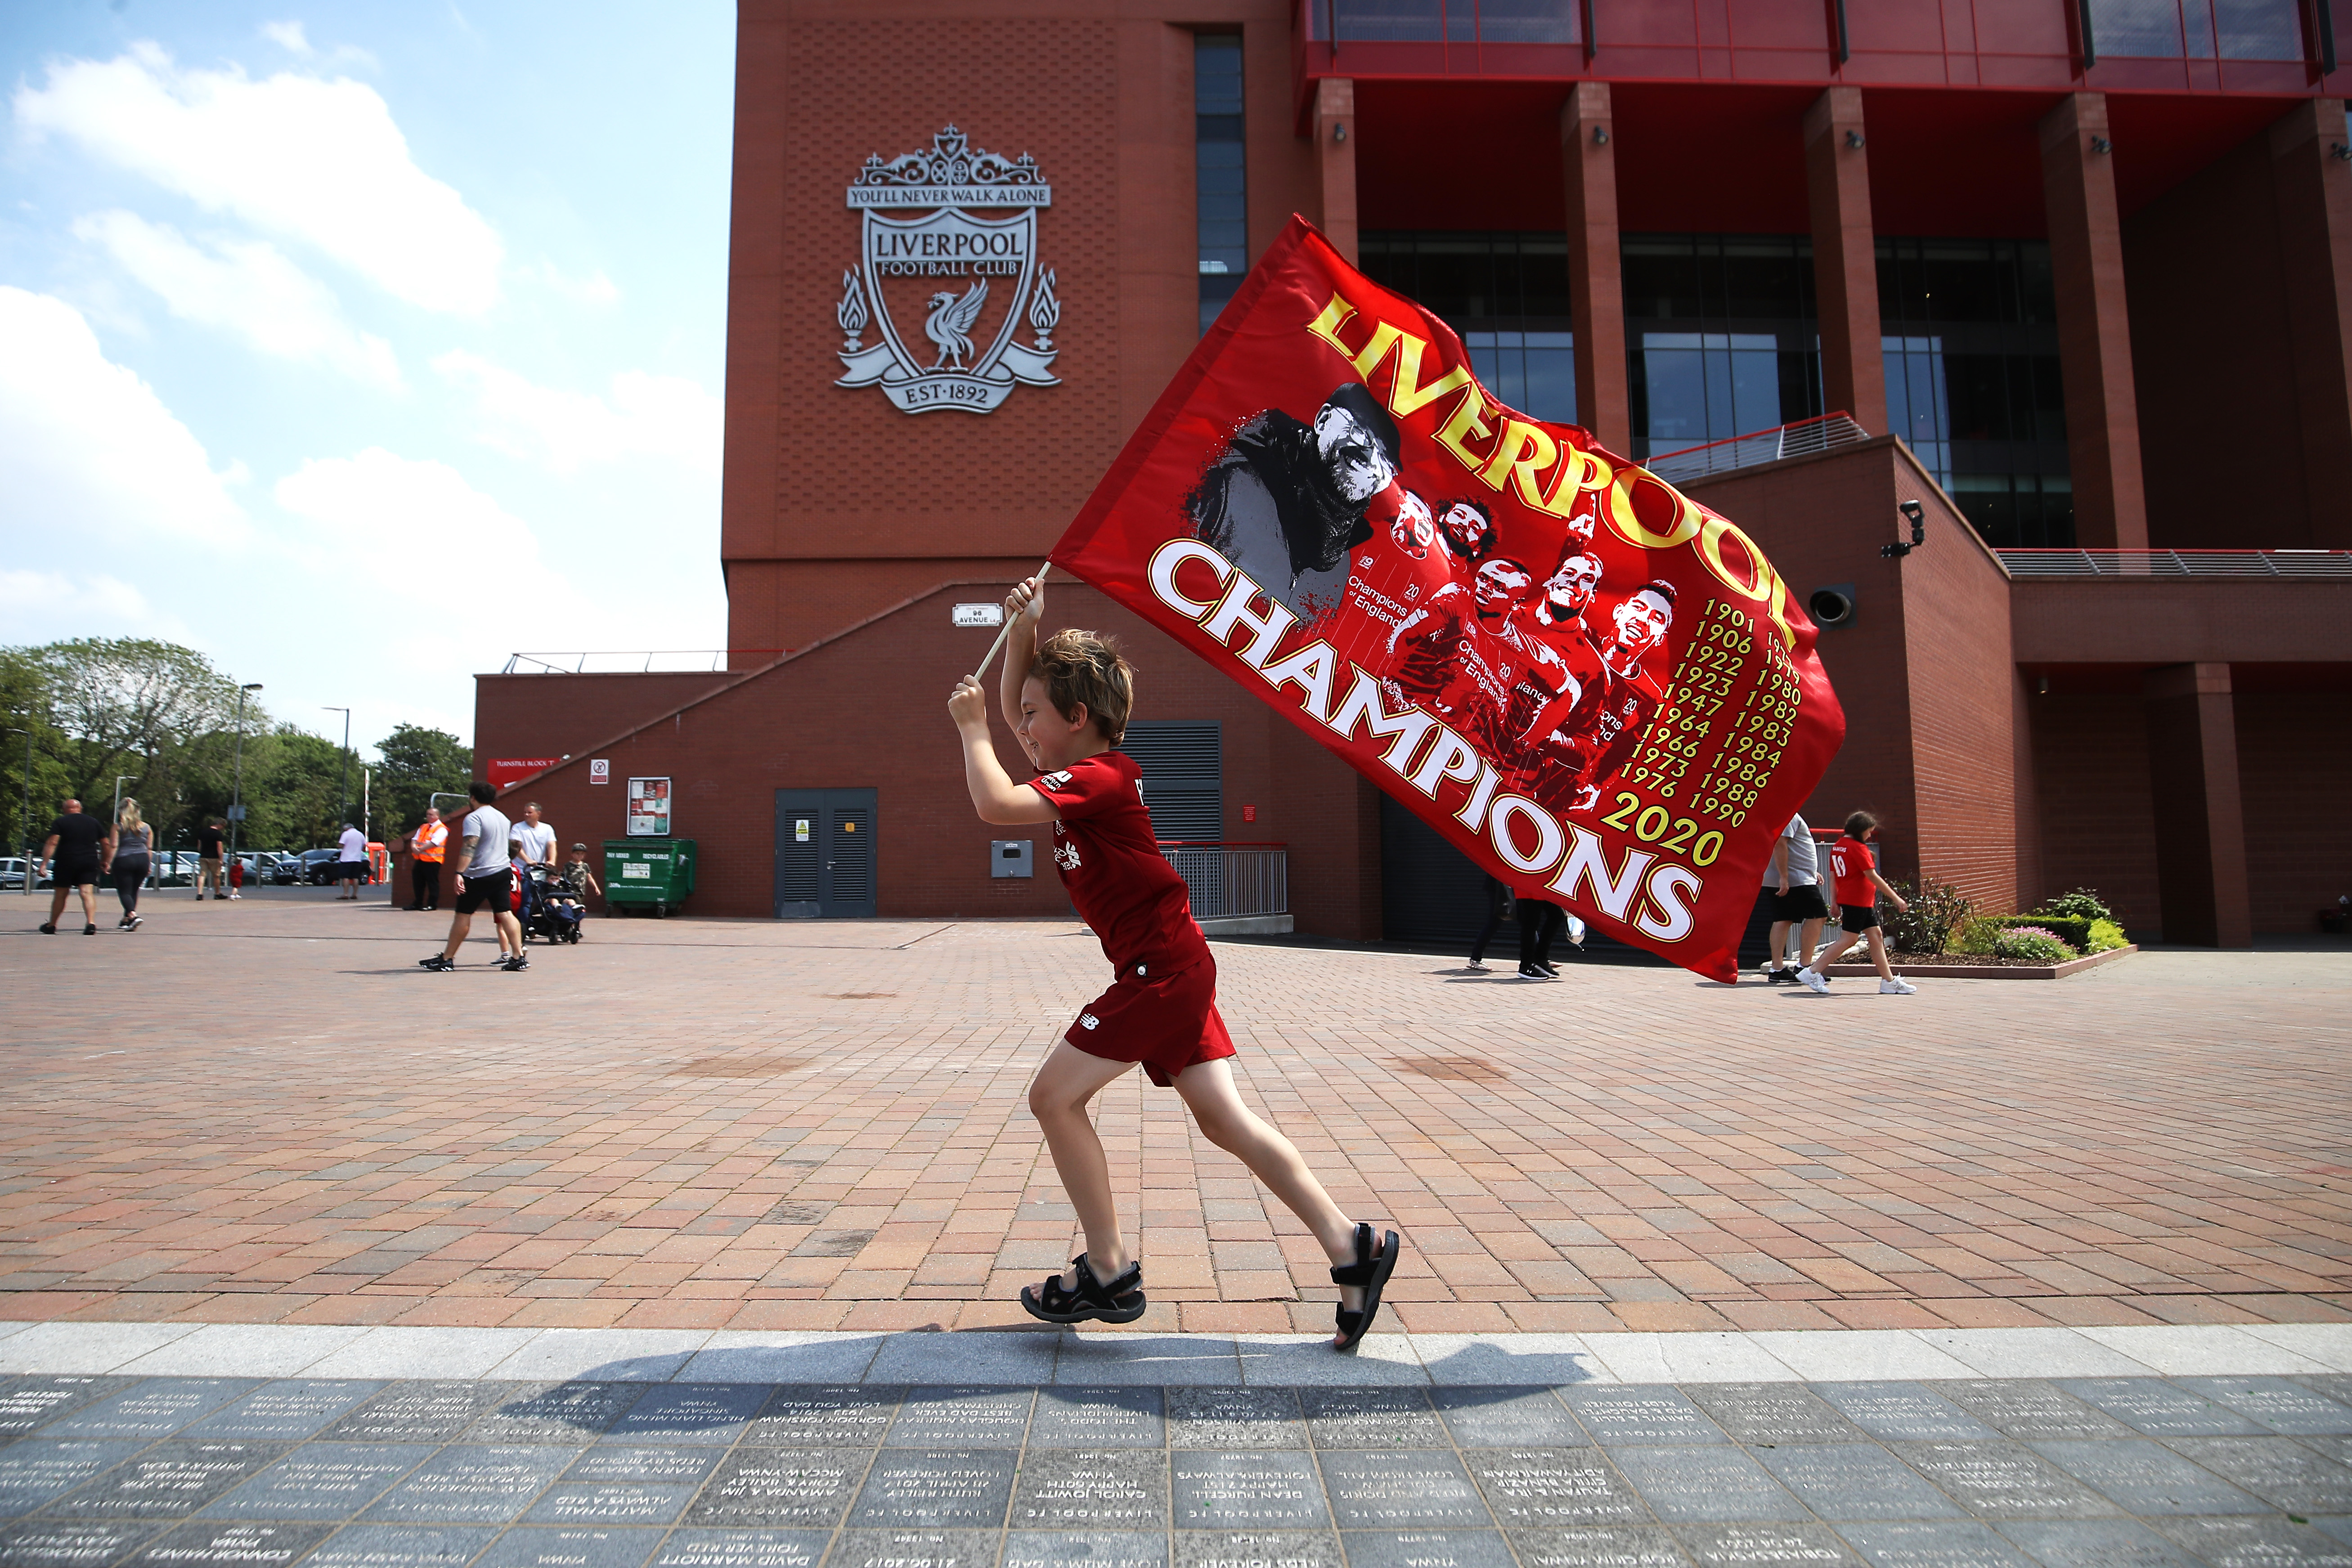 Liverpool fan Dillon Parry waves a flag outside Anfield in Liverpool. (Photo by Martin Rickett/PA Images via Getty Images)